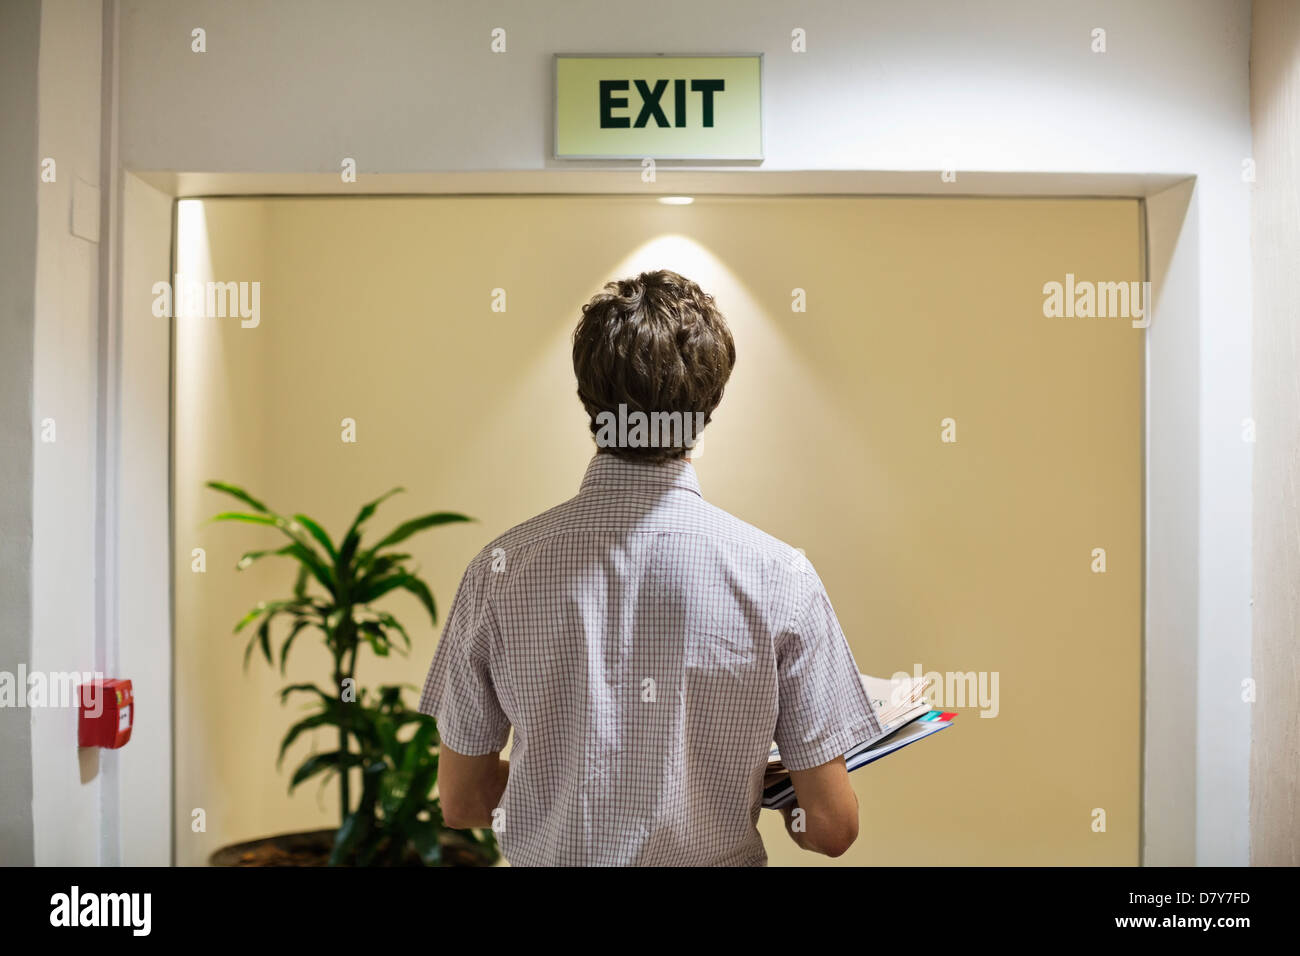 Businessman examining 'exit' sign in office - Stock Image